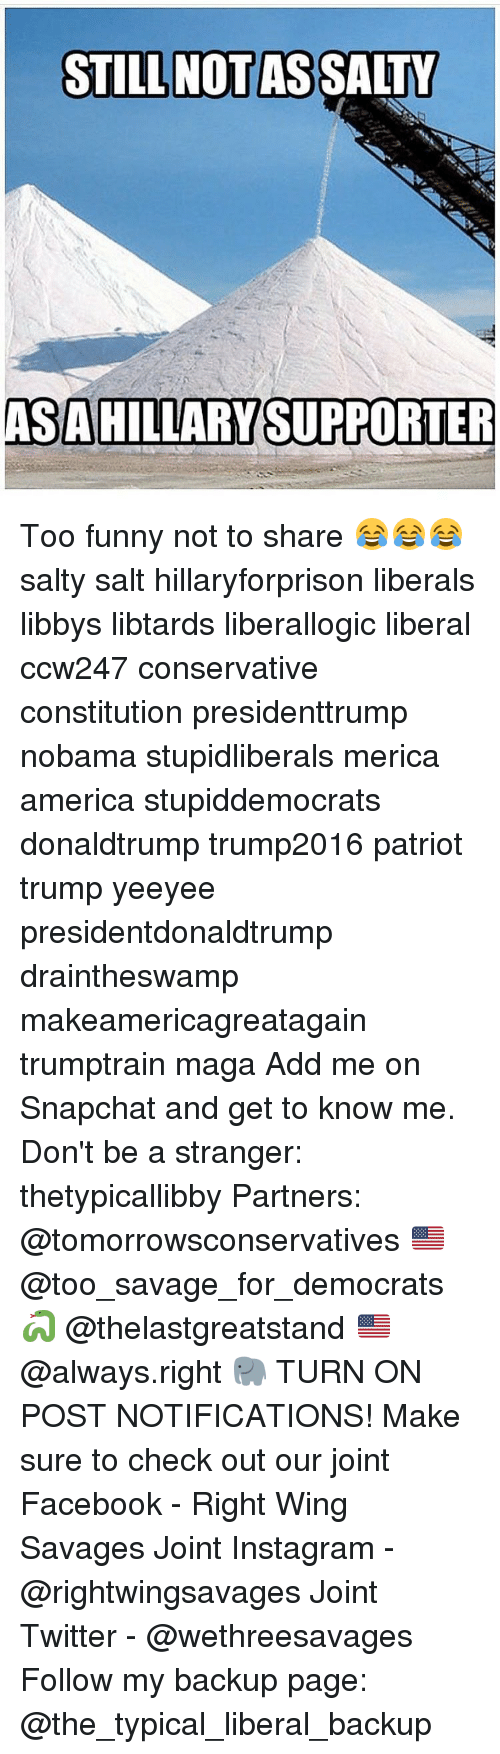 Constitution, Wings, and Conservative: STILL NOT AS  SALTY  SAHILLARY SUPPORTER Too funny not to share 😂😂😂 salty salt hillaryforprison liberals libbys libtards liberallogic liberal ccw247 conservative constitution presidenttrump nobama stupidliberals merica america stupiddemocrats donaldtrump trump2016 patriot trump yeeyee presidentdonaldtrump draintheswamp makeamericagreatagain trumptrain maga Add me on Snapchat and get to know me. Don't be a stranger: thetypicallibby Partners: @tomorrowsconservatives 🇺🇸 @too_savage_for_democrats 🐍 @thelastgreatstand 🇺🇸 @always.right 🐘 TURN ON POST NOTIFICATIONS! Make sure to check out our joint Facebook - Right Wing Savages Joint Instagram - @rightwingsavages Joint Twitter - @wethreesavages Follow my backup page: @the_typical_liberal_backup